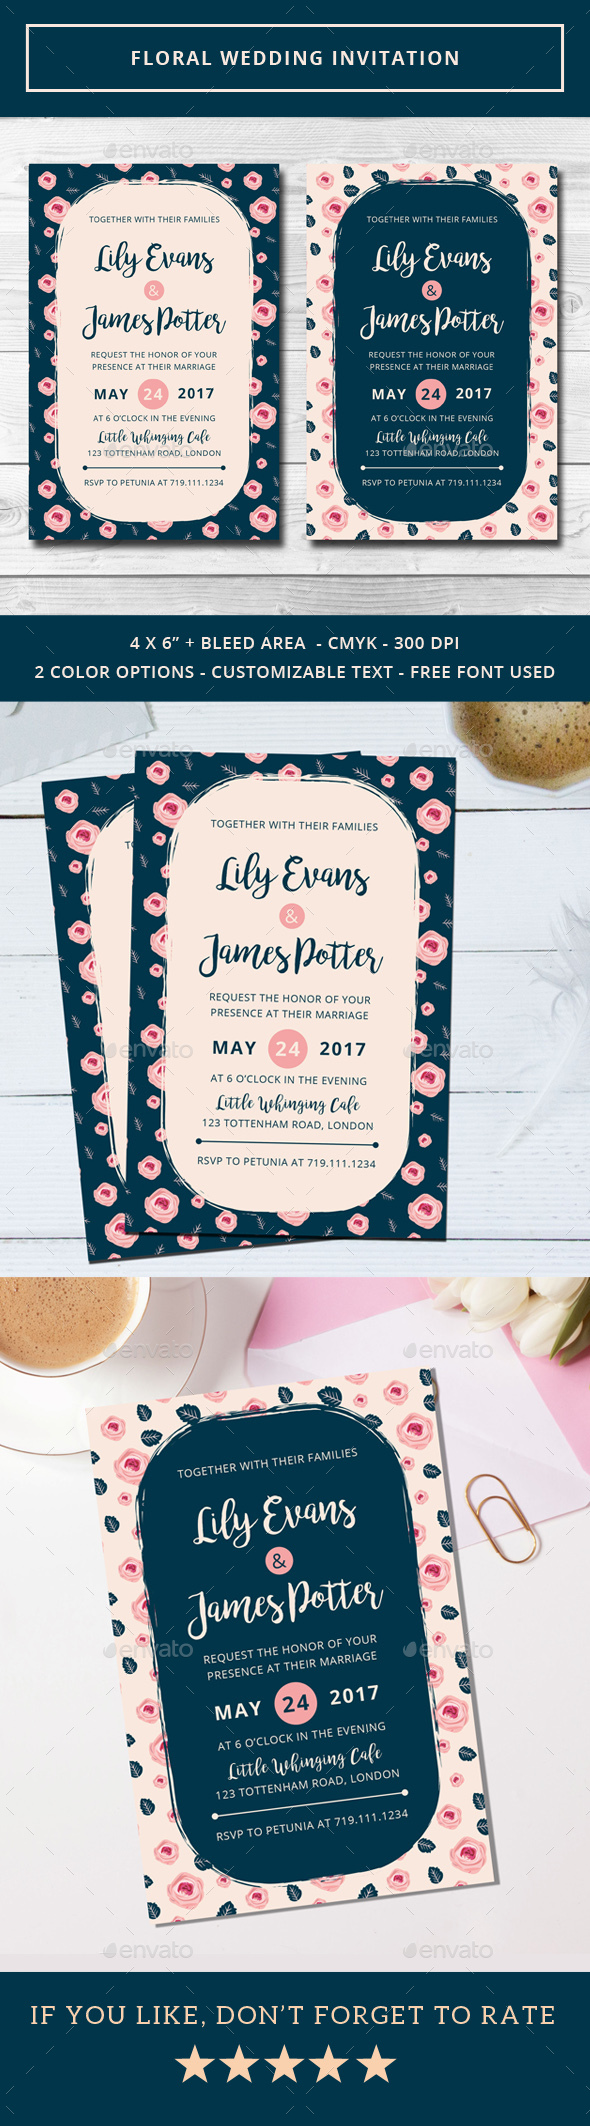 Floral Wedding Invitation - Weddings Cards & Invites